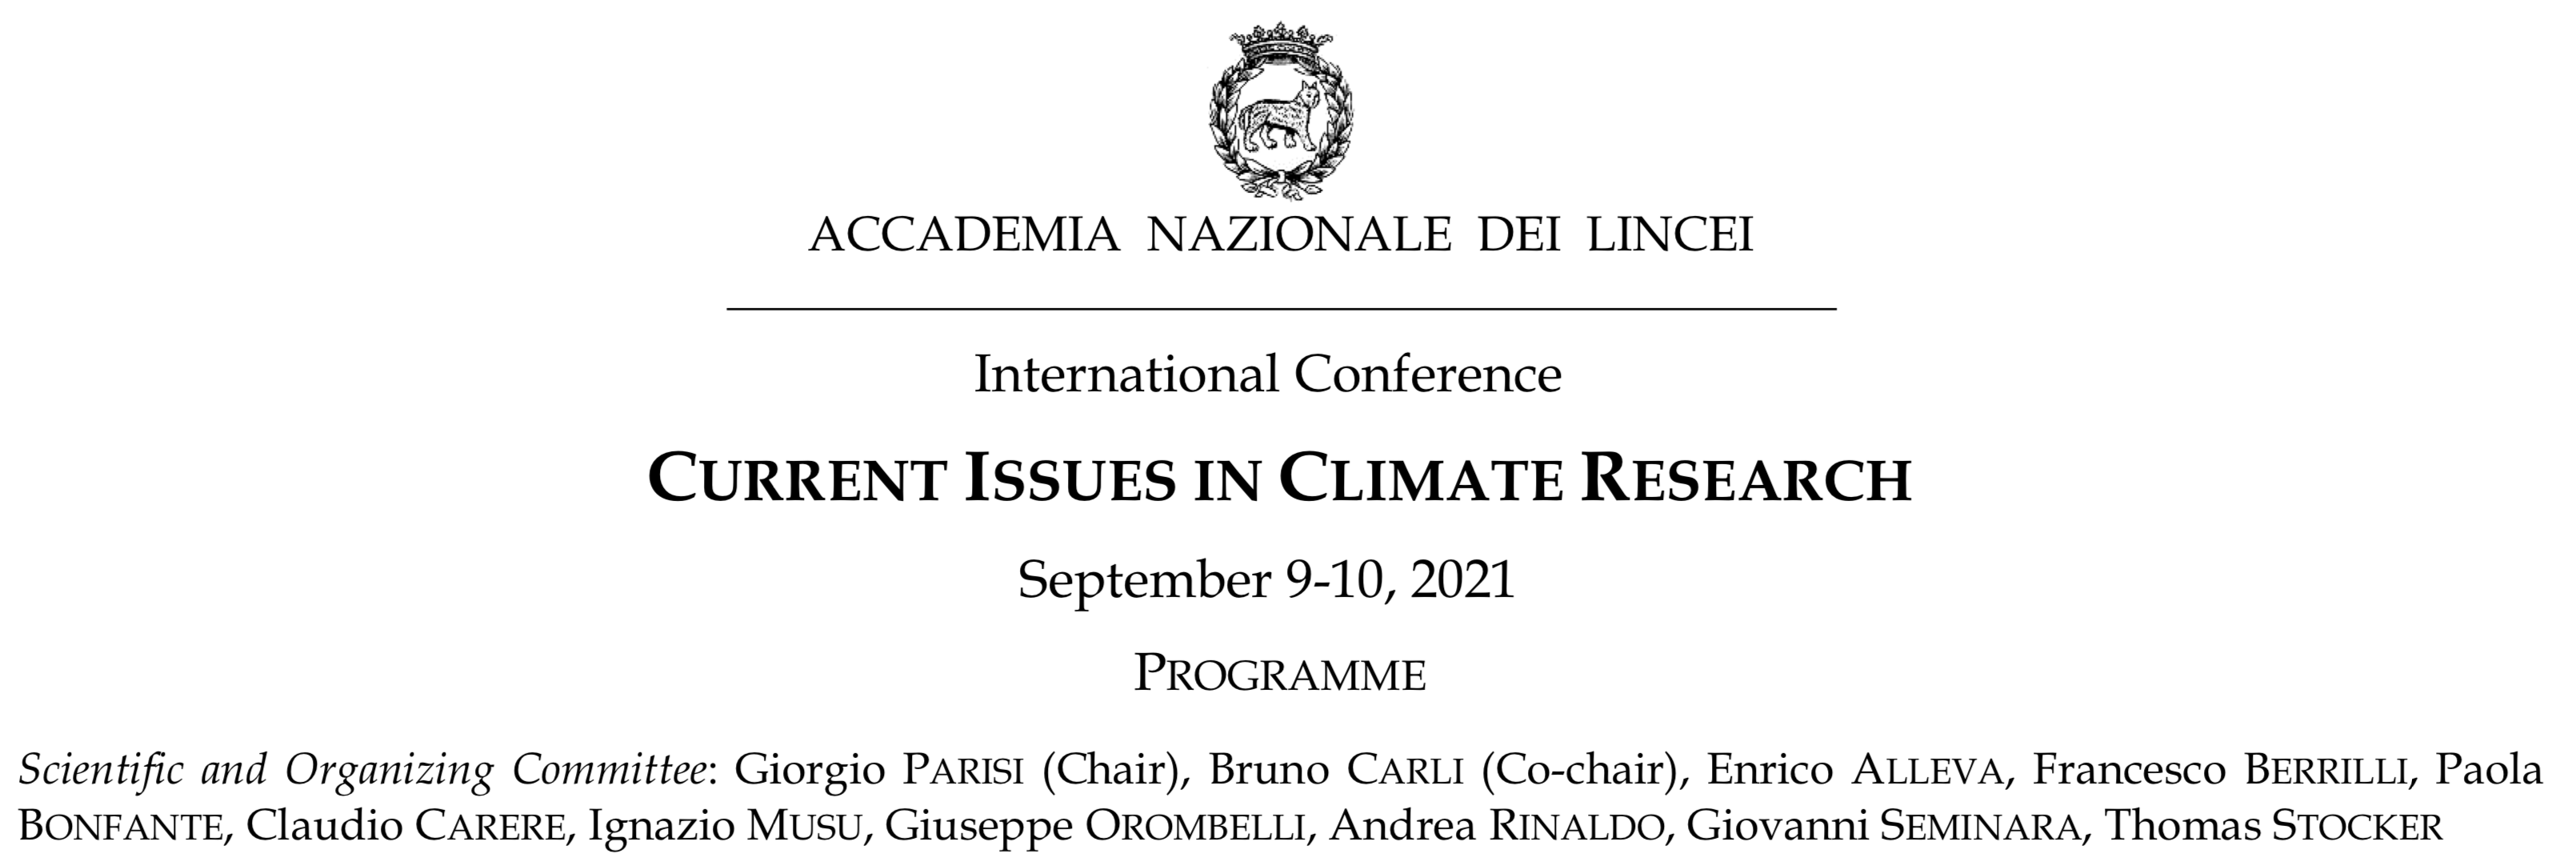 Current Issues in Climate Research - Conference